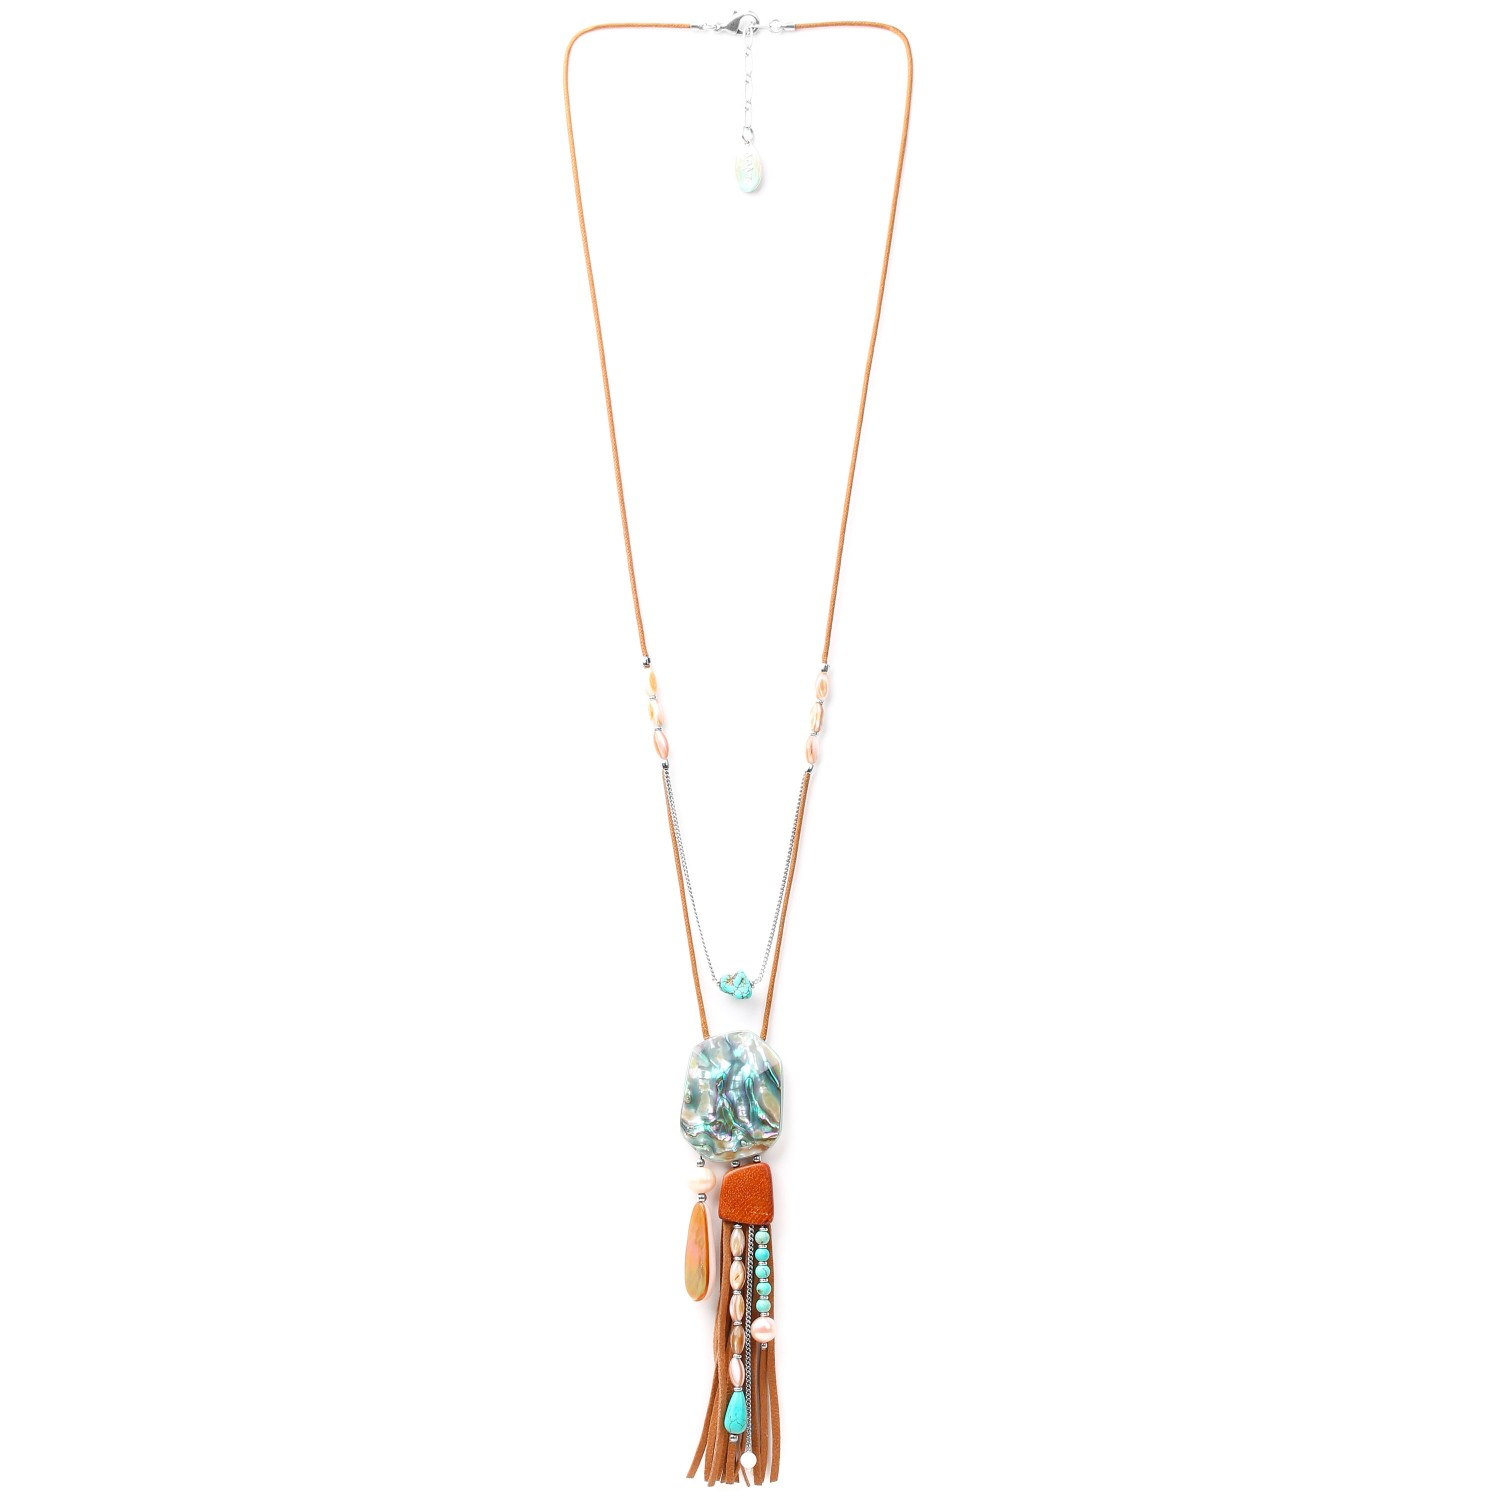 MANGAREVA collier long